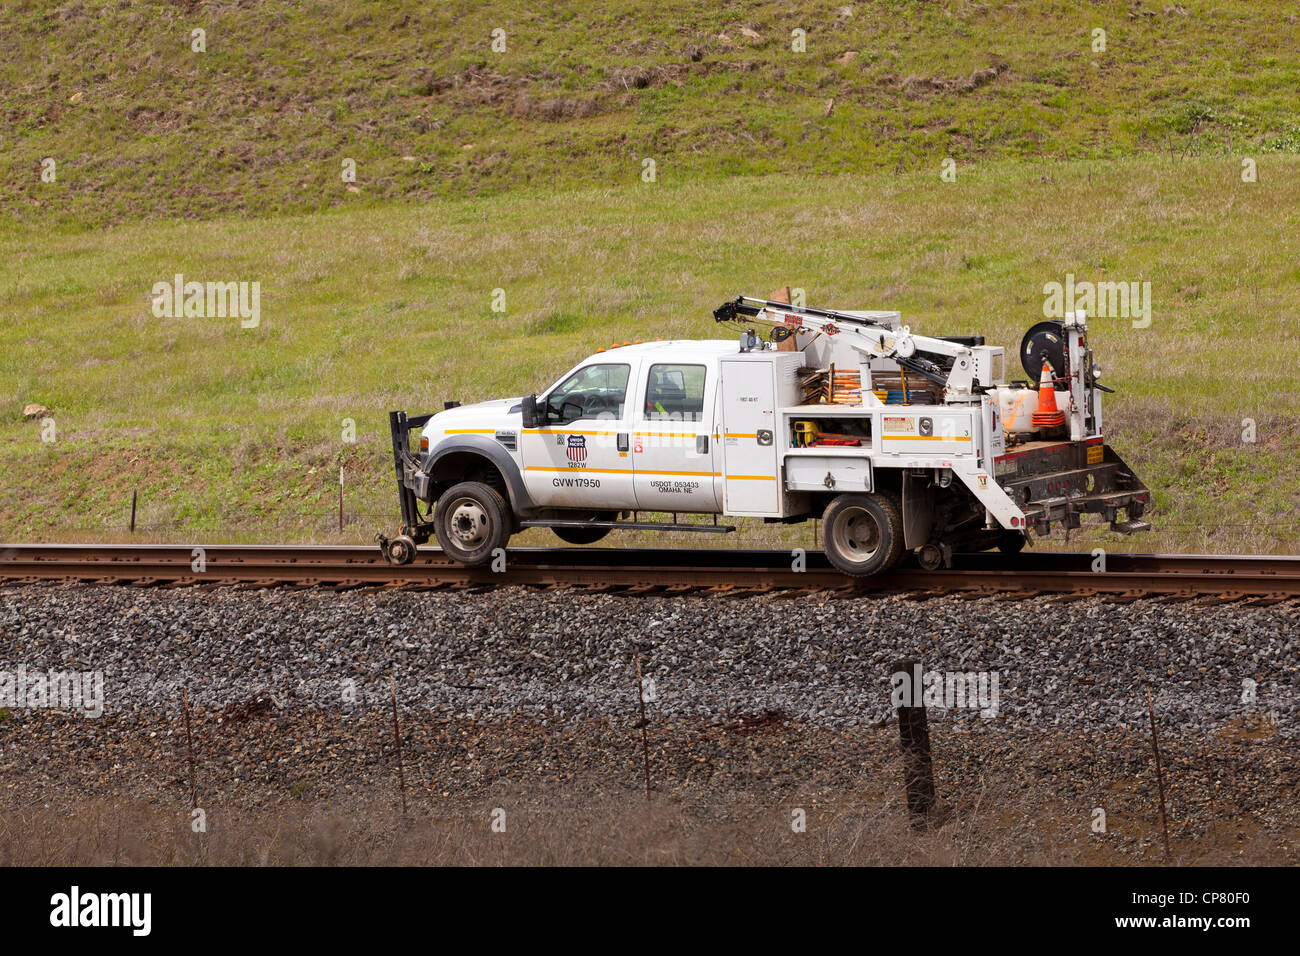 Hi-rail truck on train tracks - Stock Image